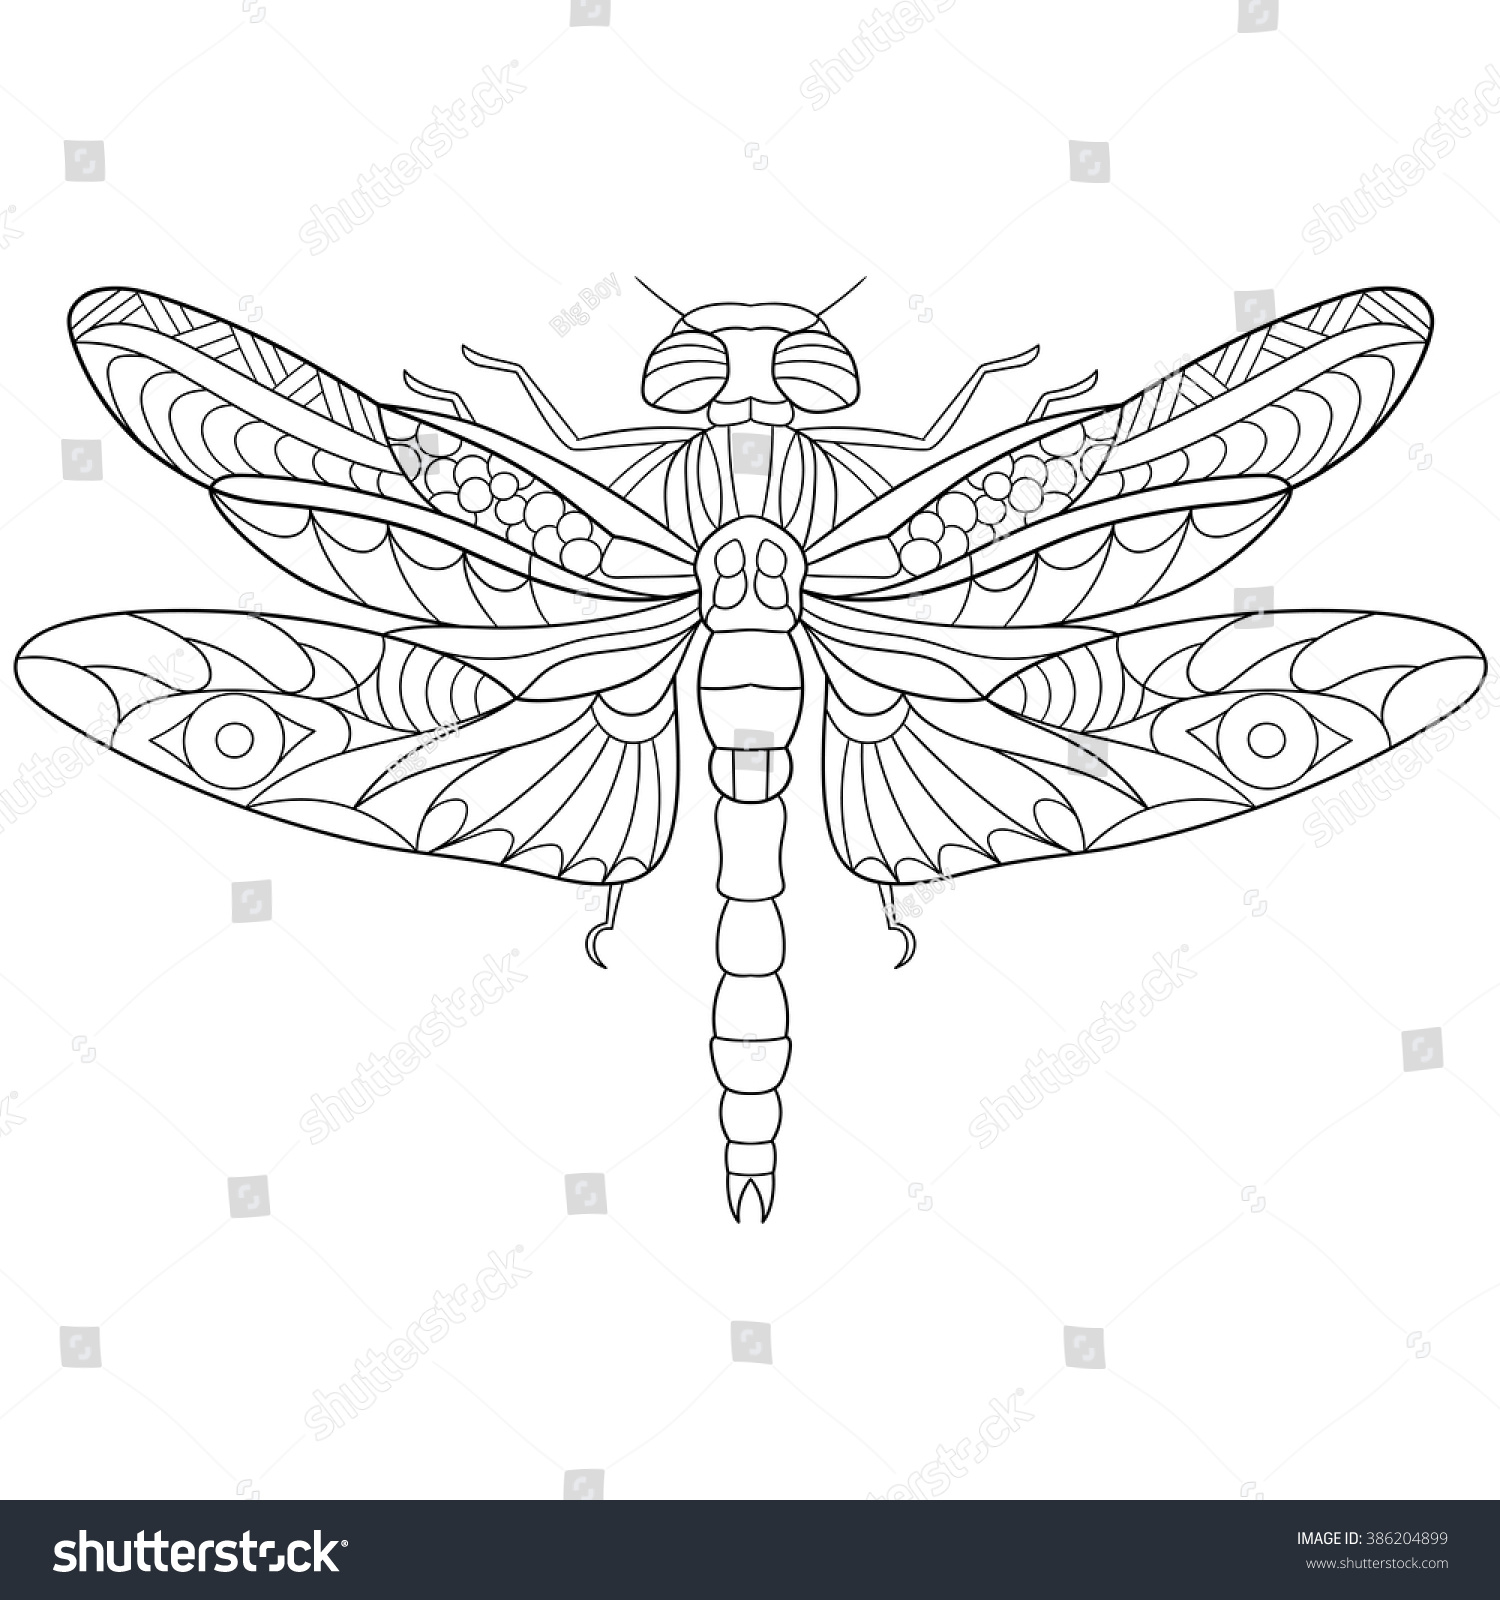 Coloring in dragonflies - Zentangle Stylized Cartoon Dragonfly Insect Isolated On White Background Sketch For Adult Antistress Coloring